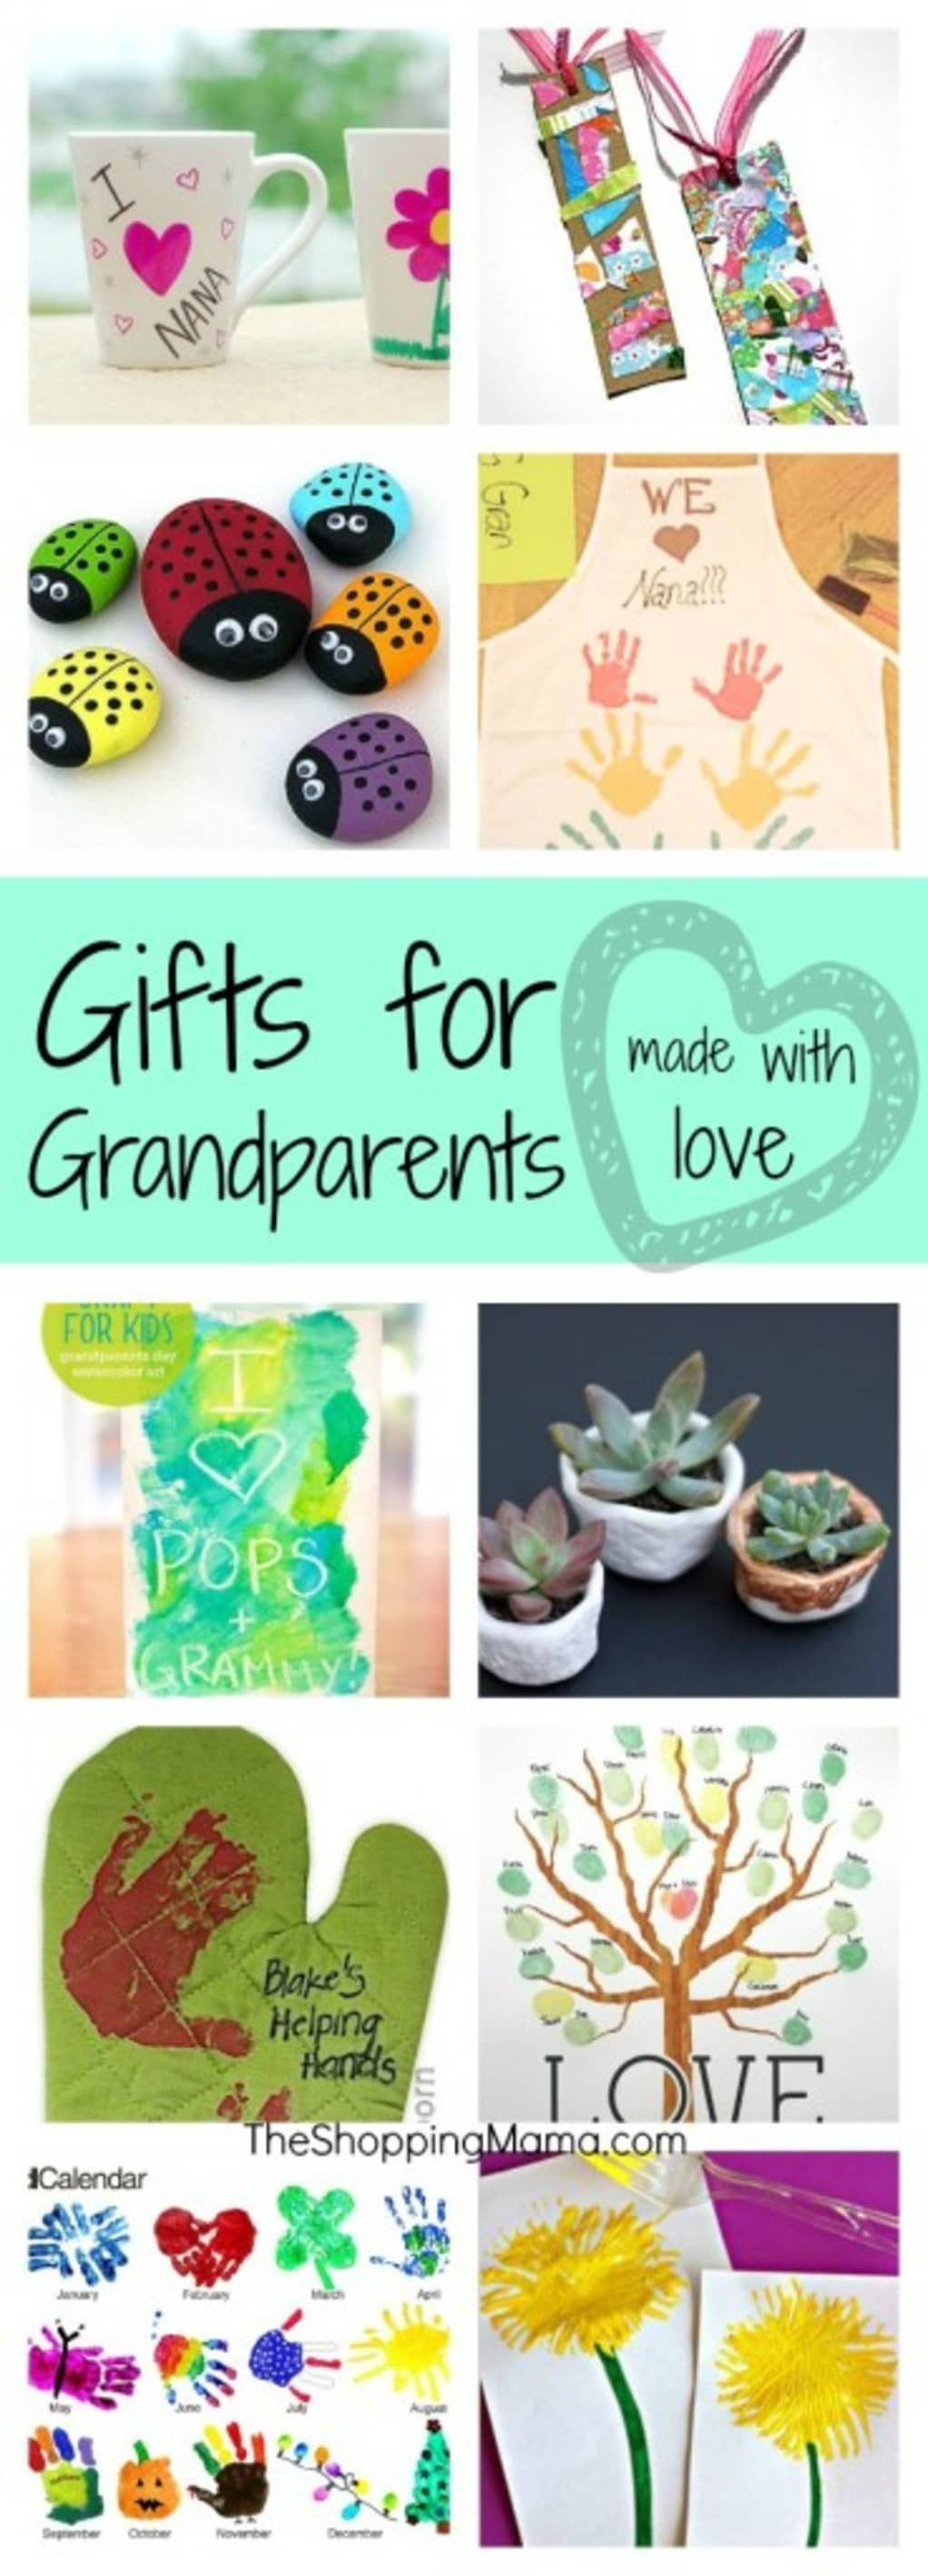 Handmade Gifts for Grandparents #grandparentsdaygifts Handmade Gifts for Grandparents | MomTrends #grandparentsdaycrafts